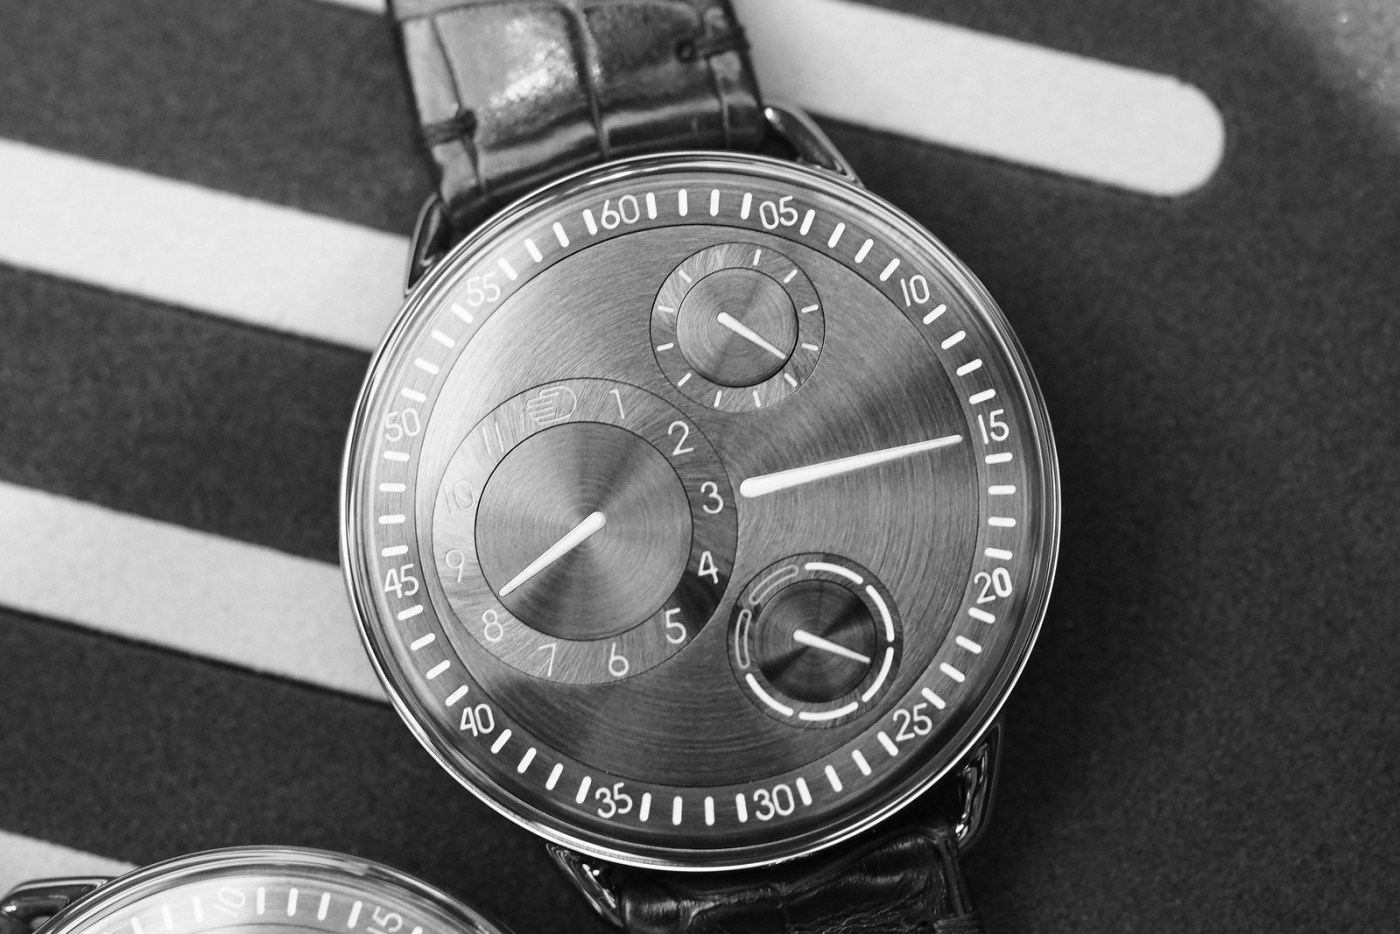 Ressence Type-1 brushed